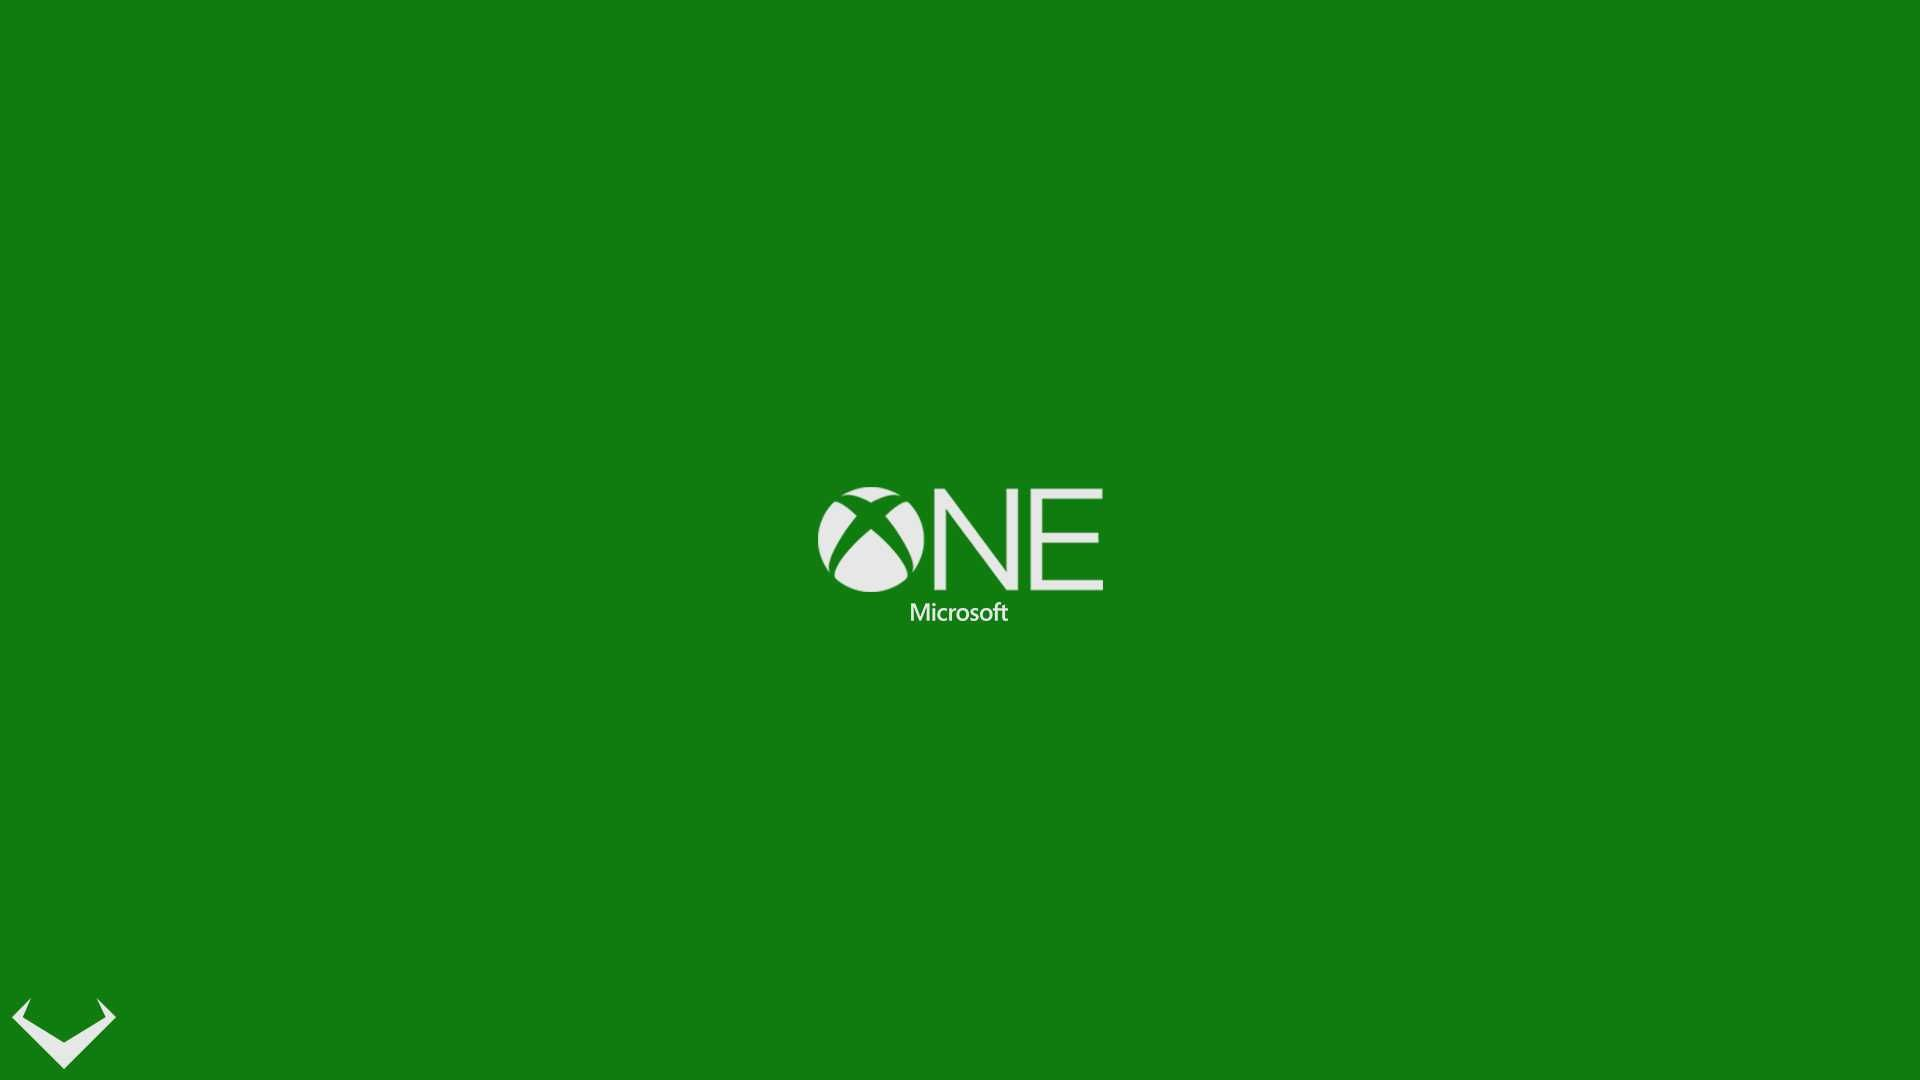 1920x1080 Xbox One Wallpaper 4k Desktop Computer Screen Of By Rlbdesigns On ...